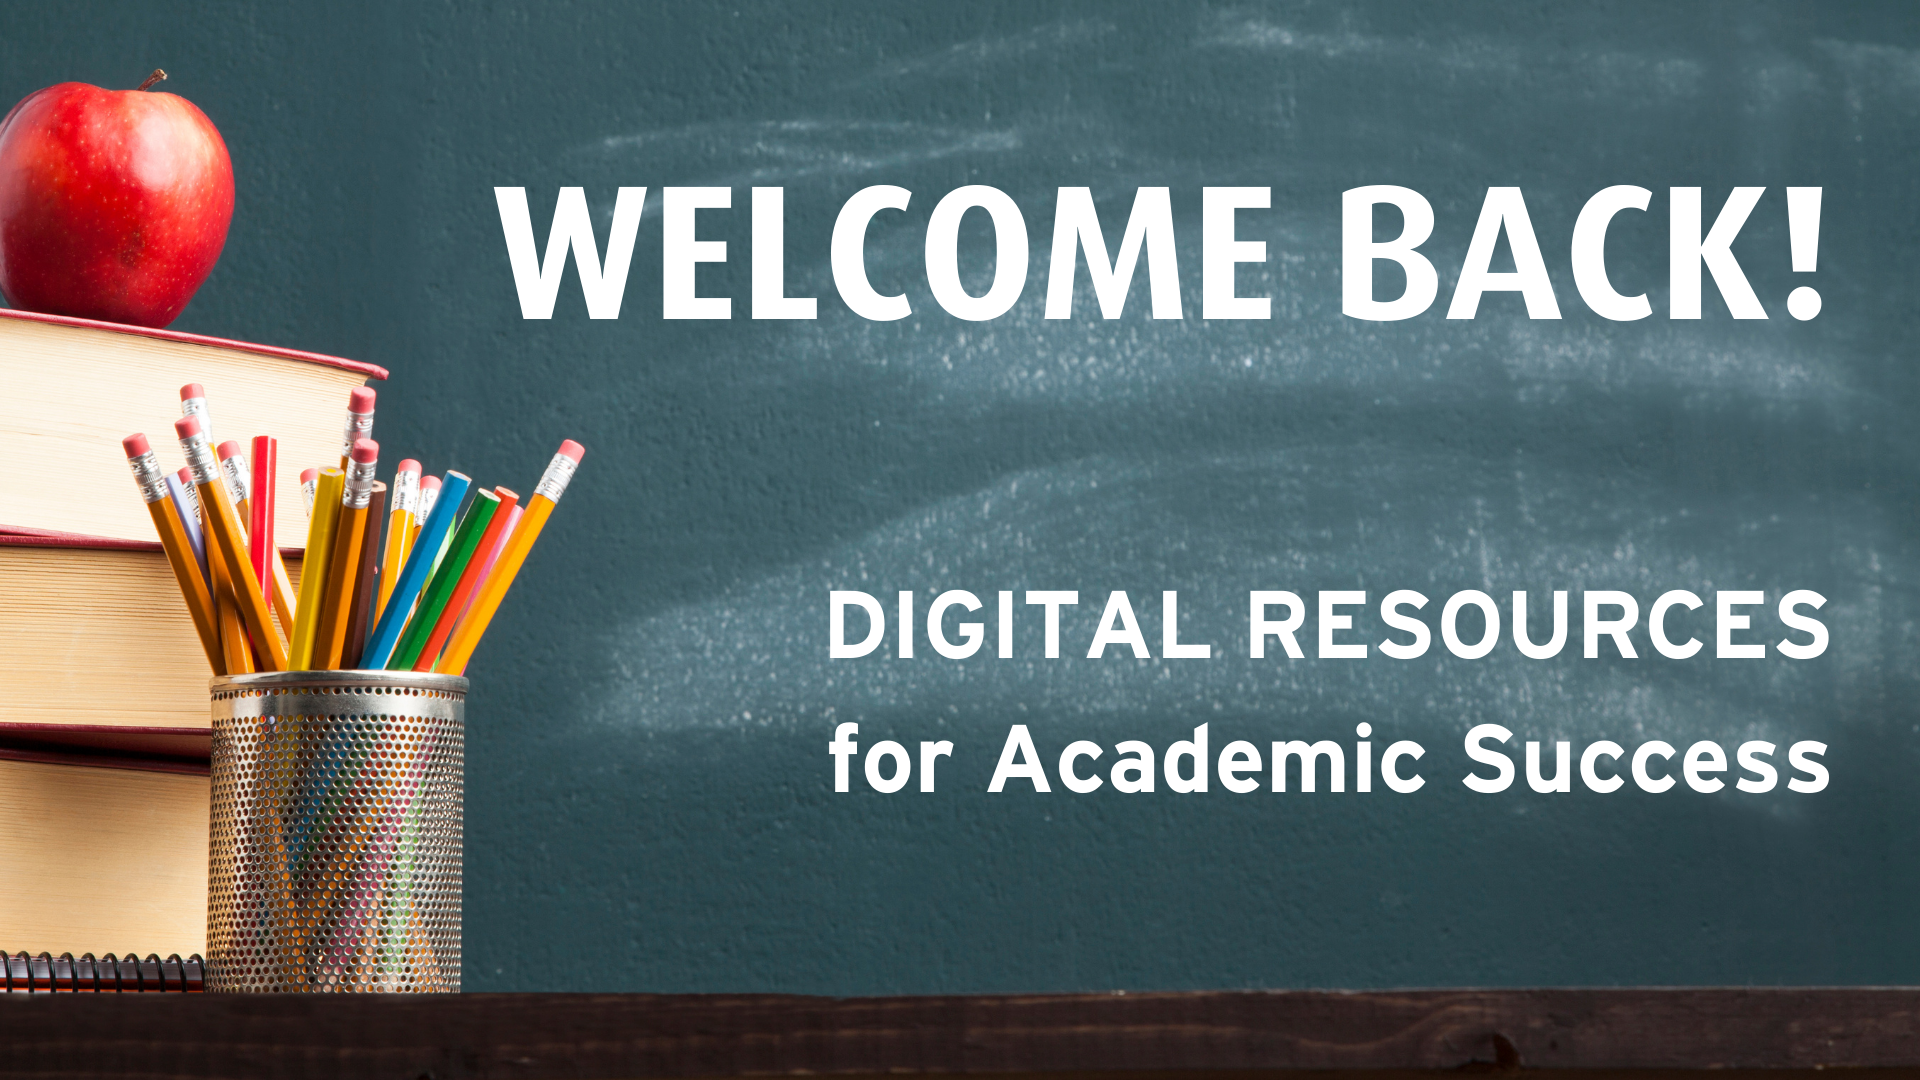 Welcome Back! Digital Resources for Academic Success